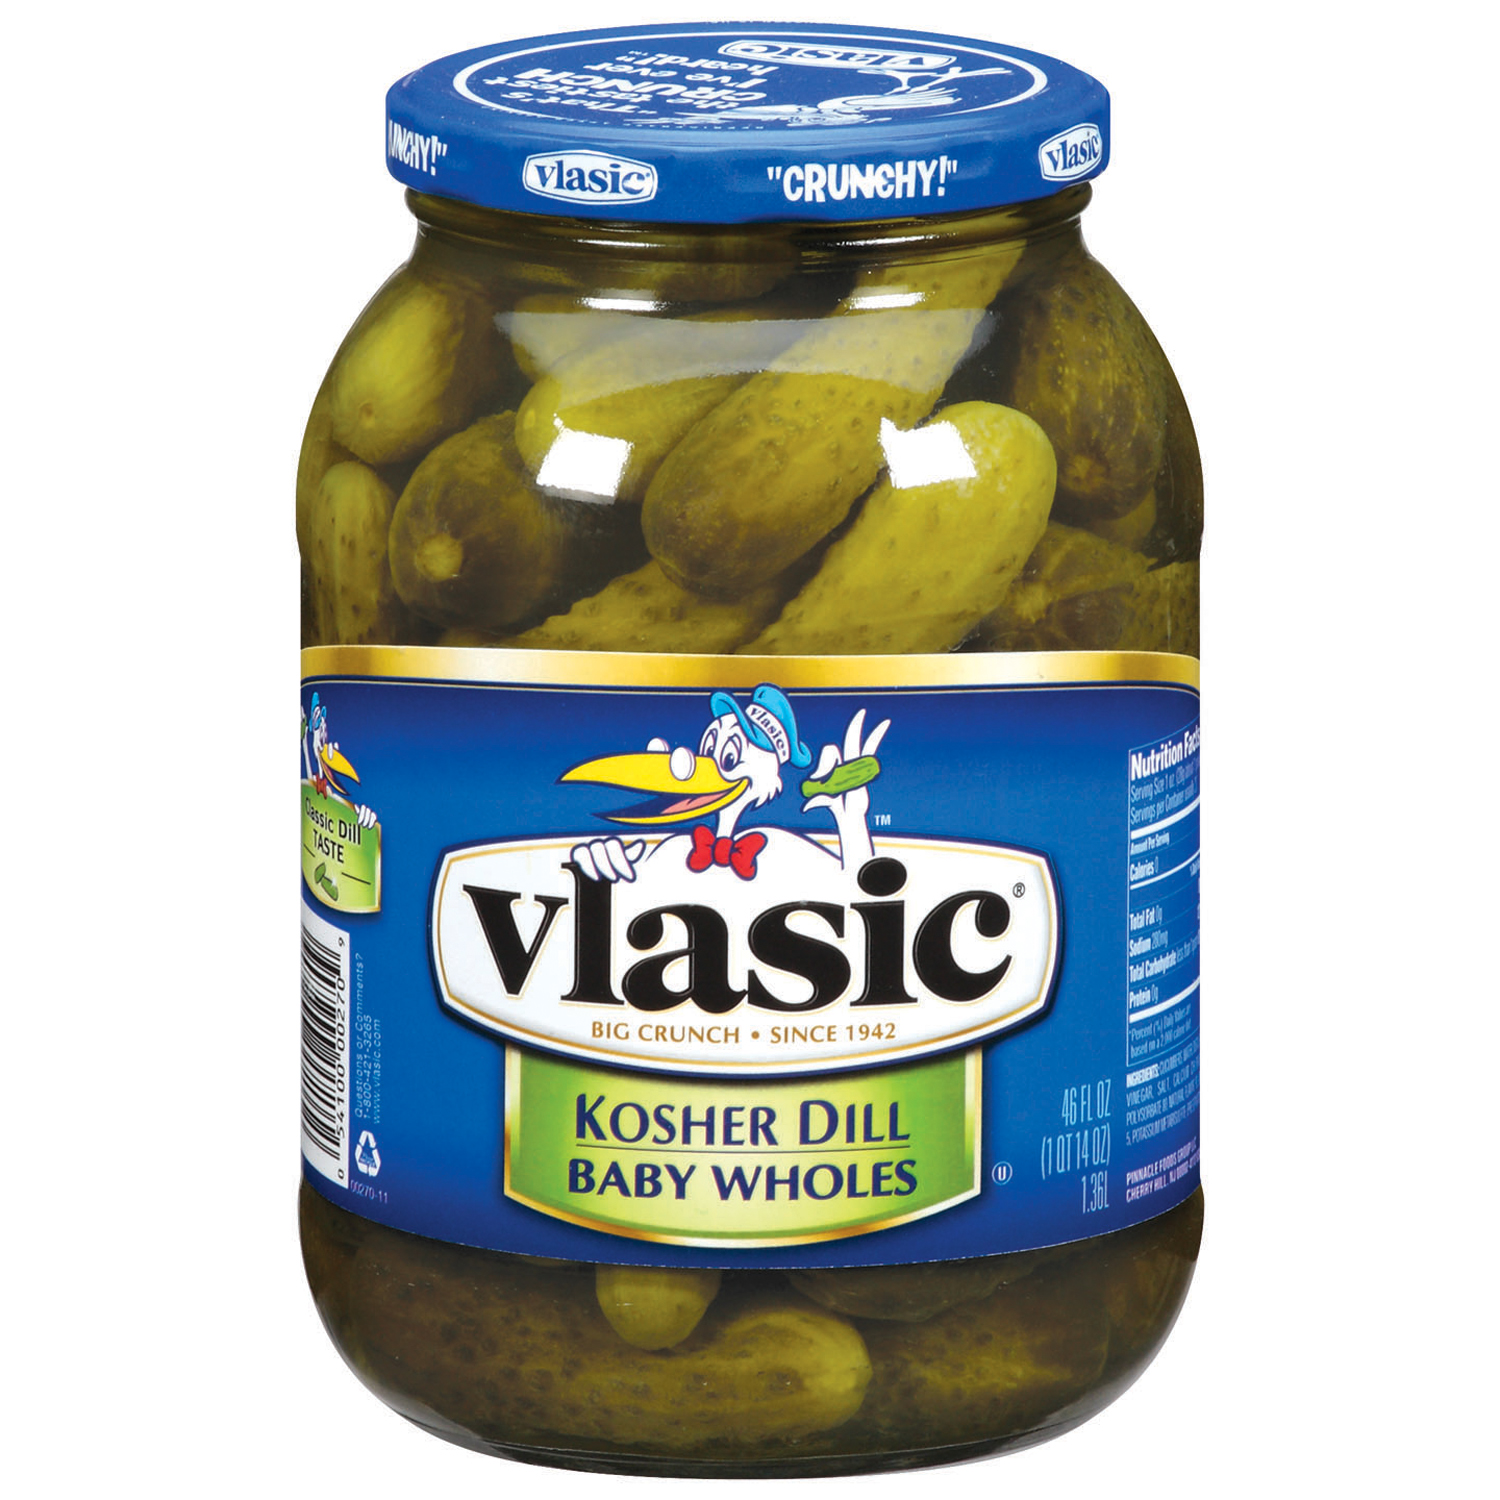 Vlasic Baby Kosher Dill Wholes Pickles 46 Fl Oz Jar